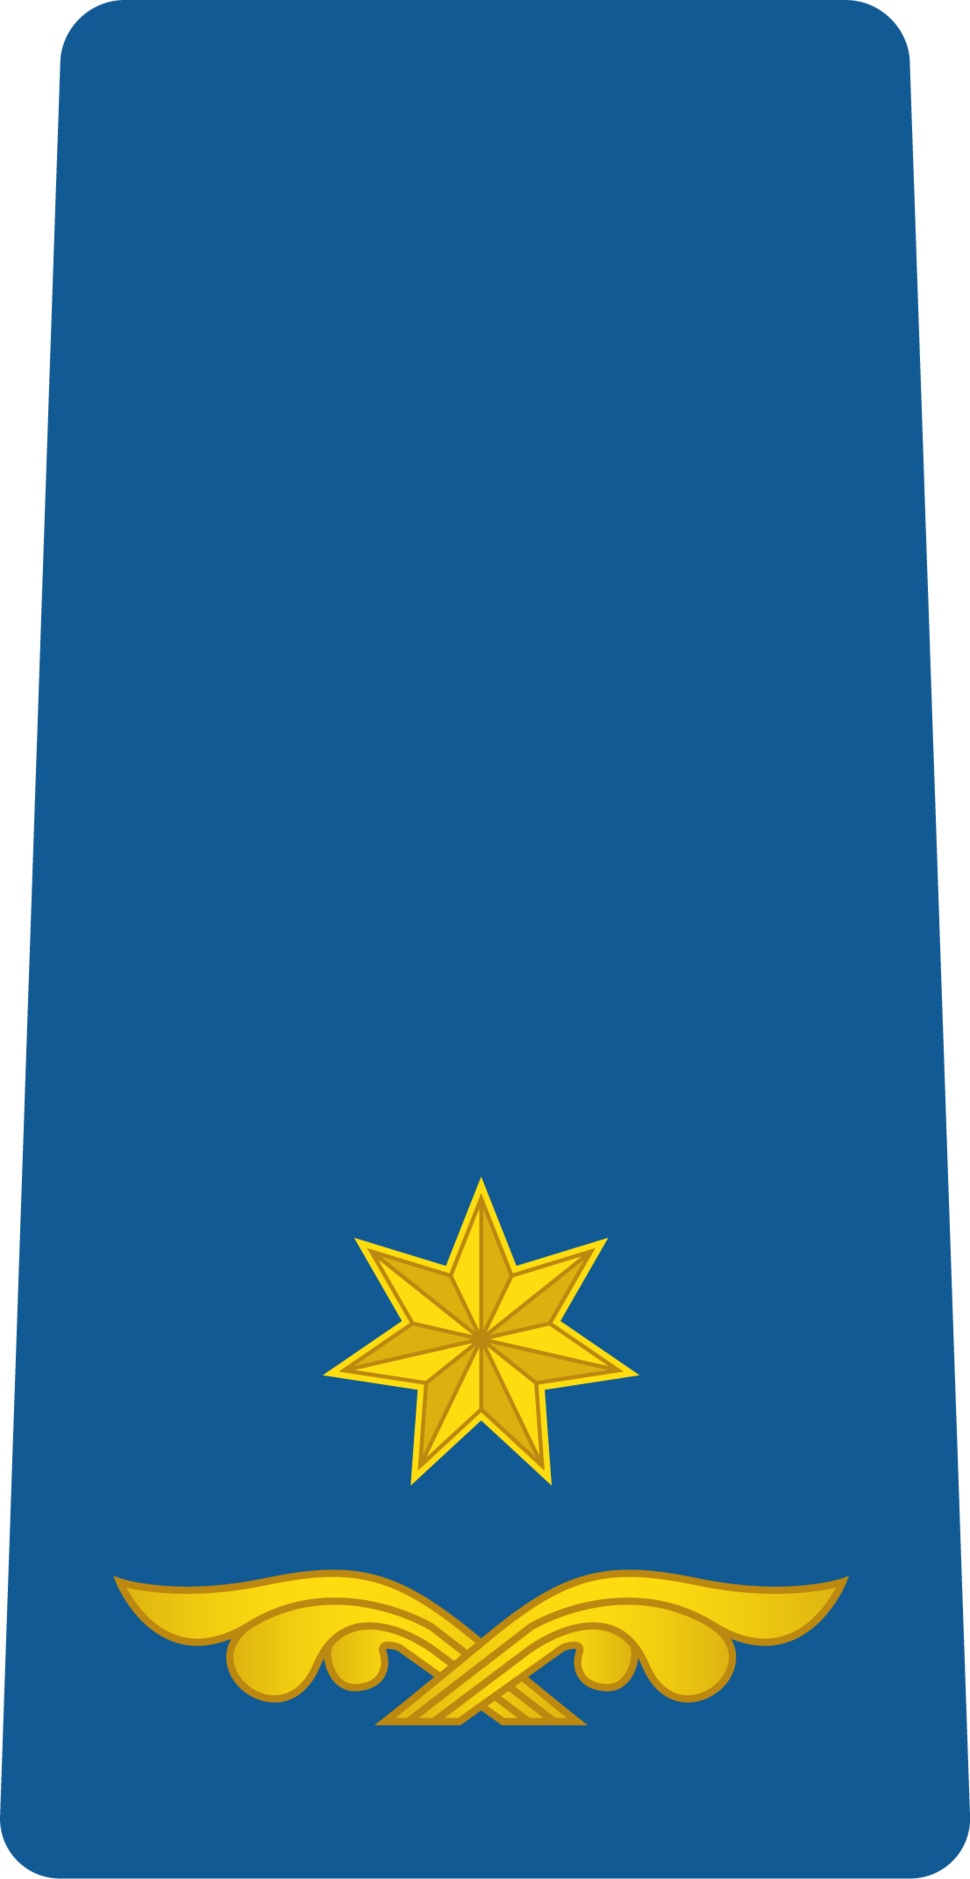 Georgia Air Force OF-4